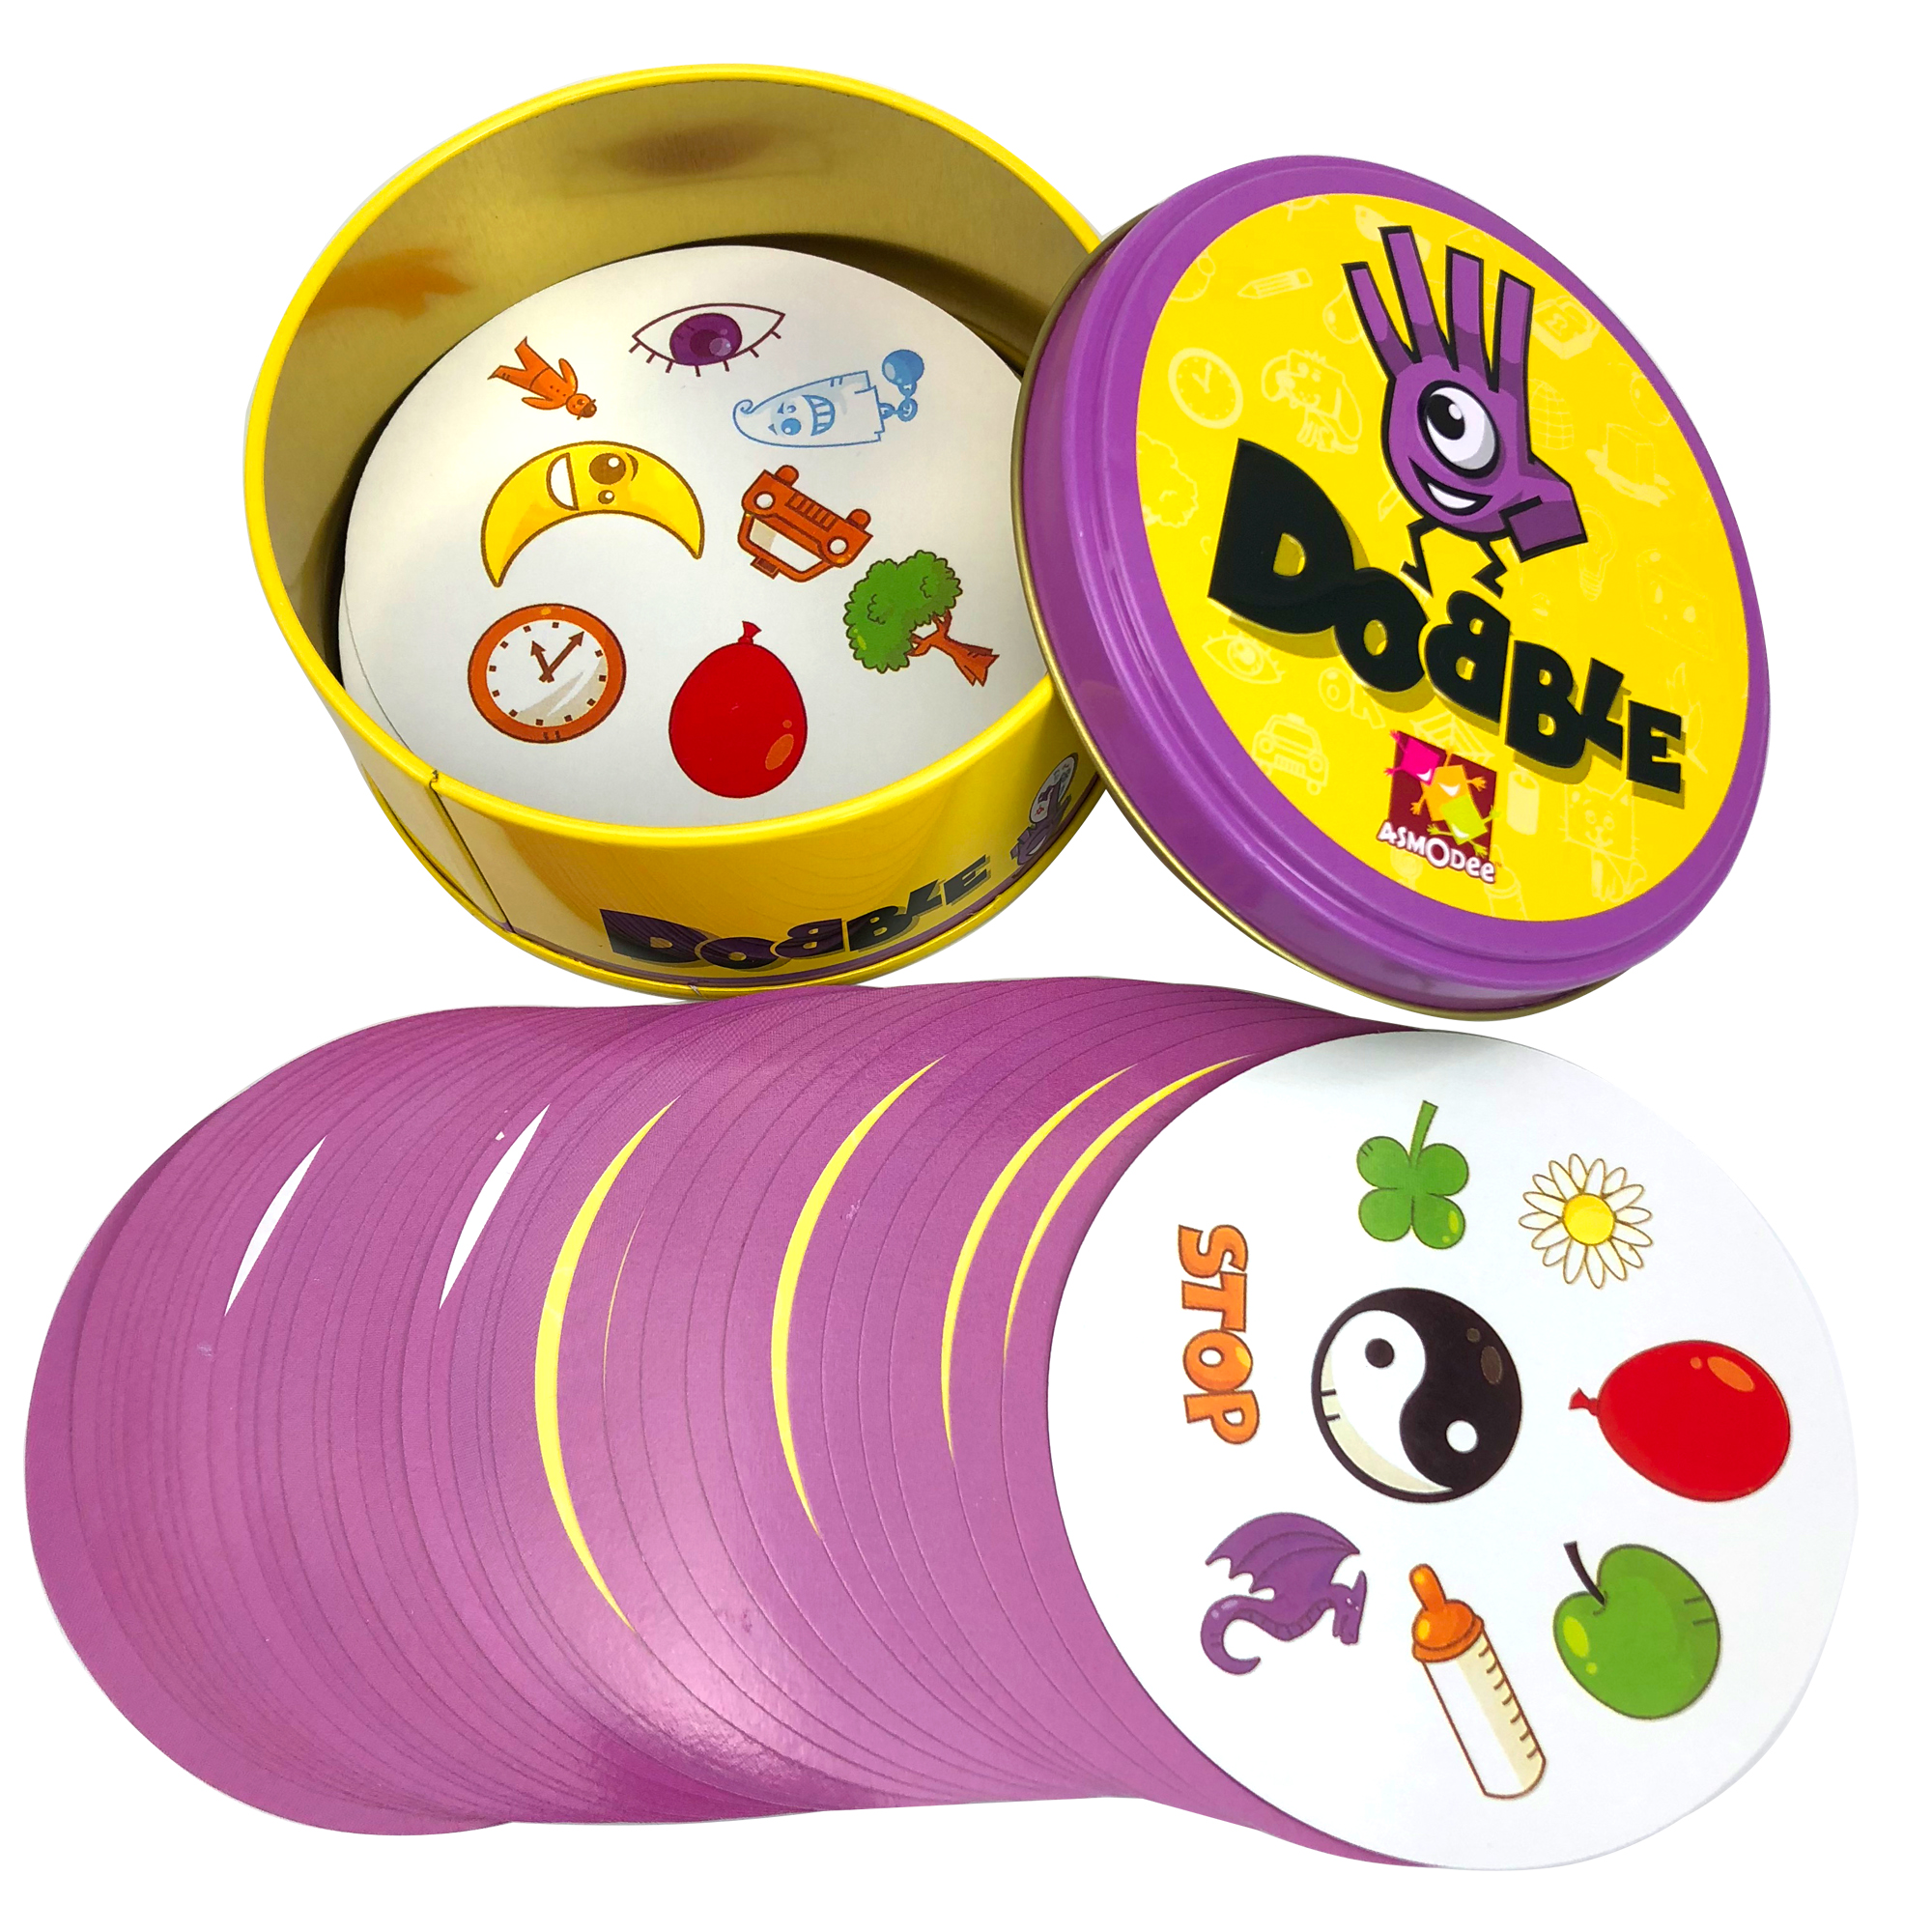 Card-Game Table Spot-Cards Tin-Box English-Toys Basic SHALOM Dobble Kids Camping And